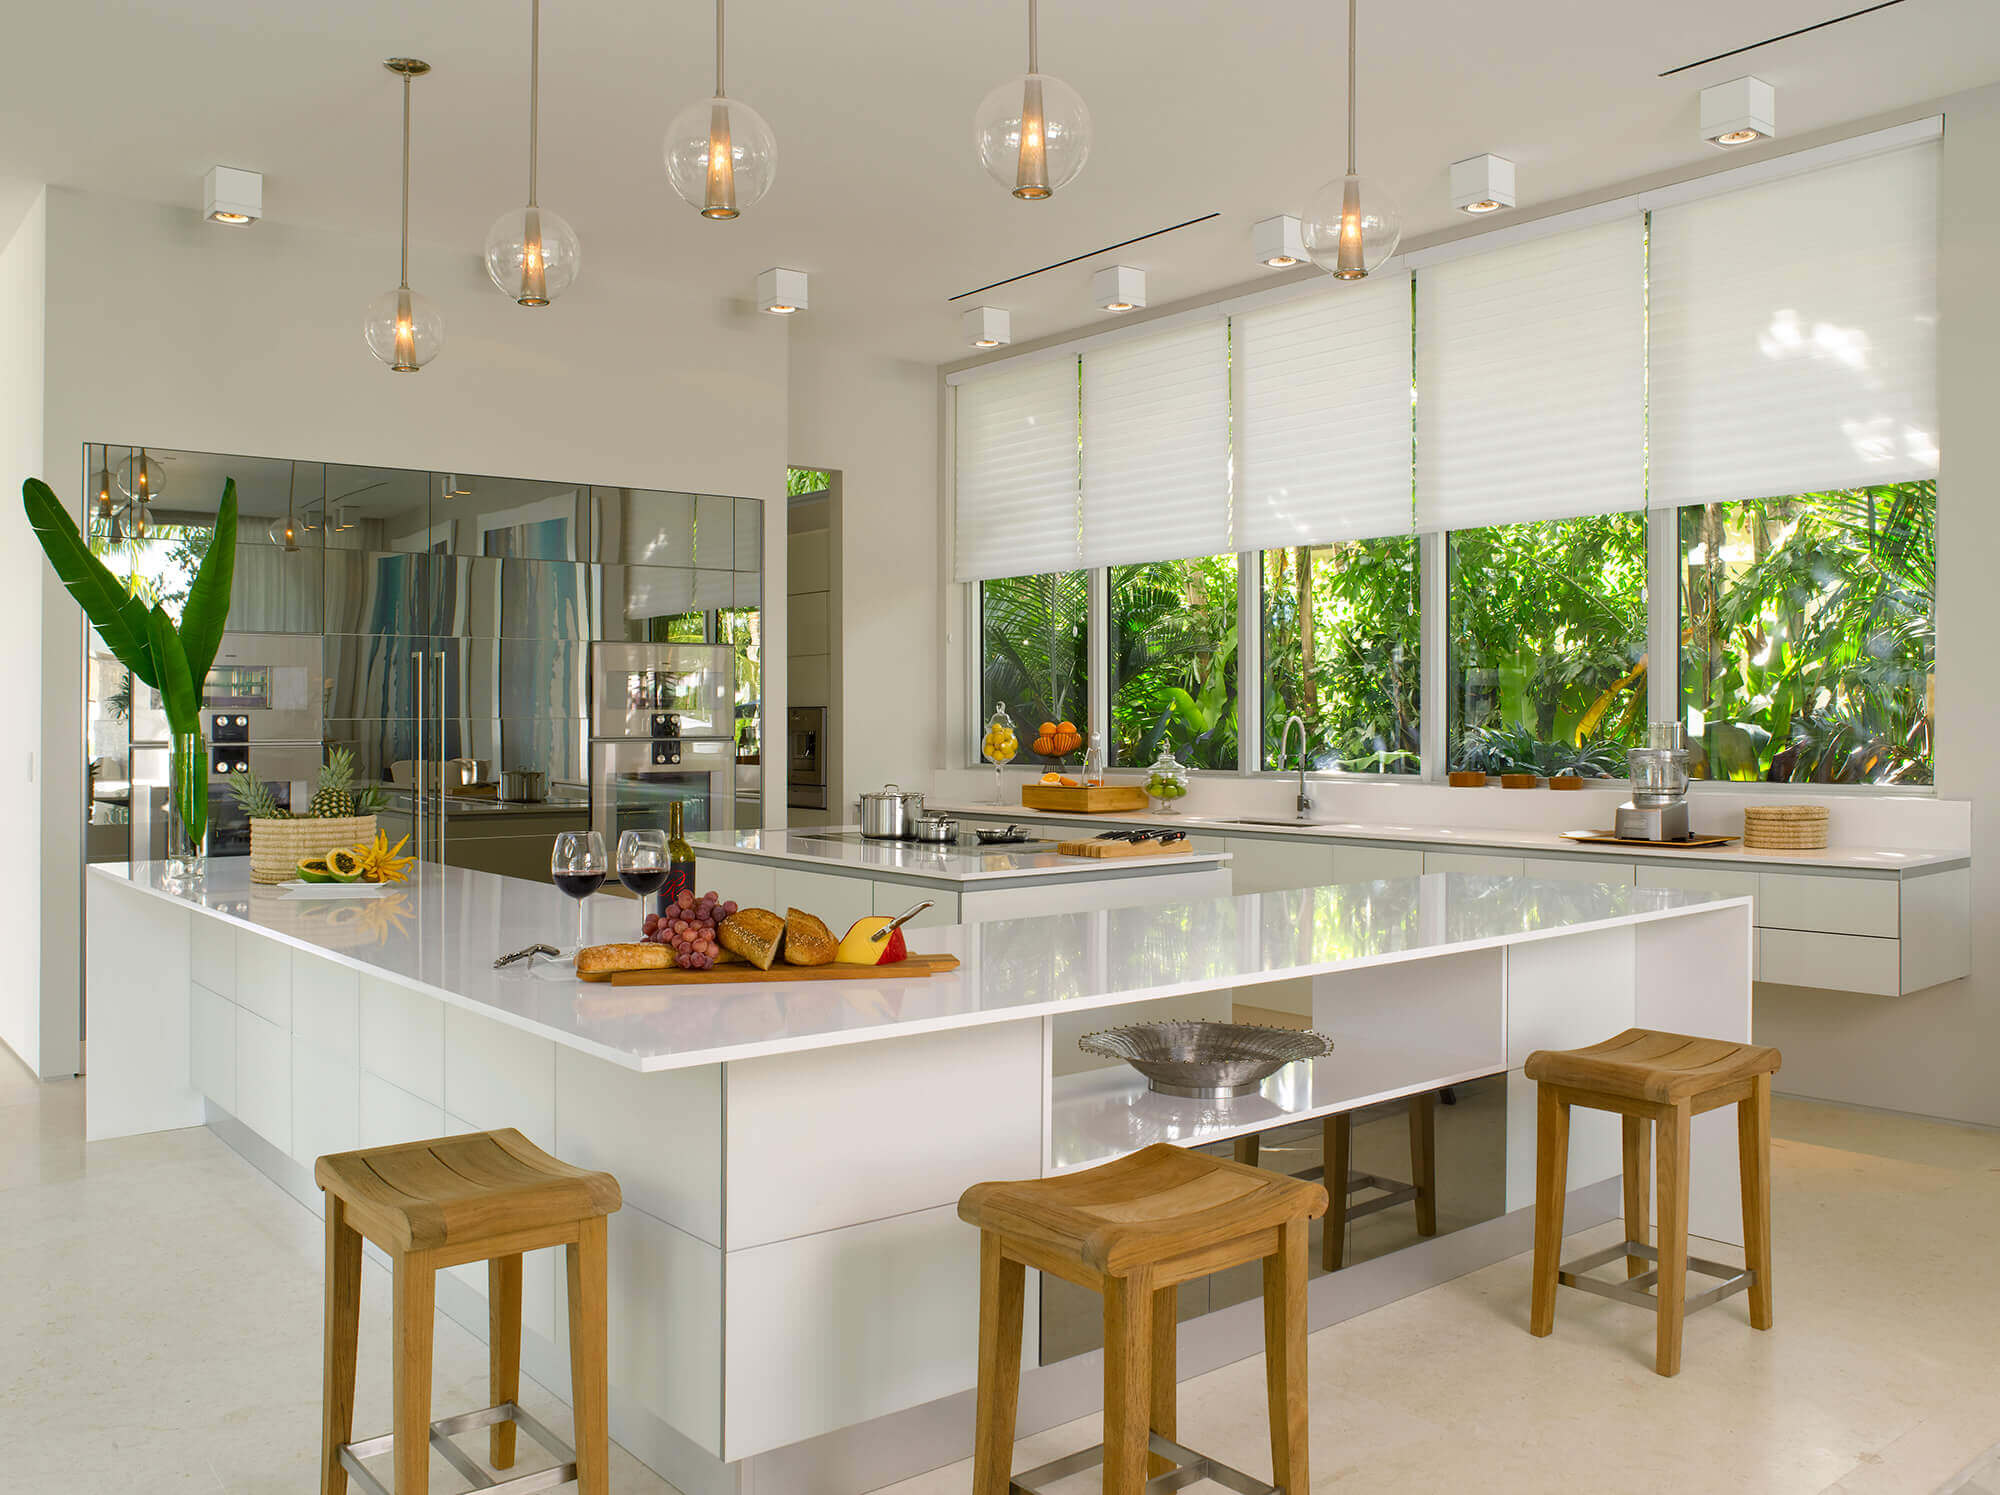 78 Great Looking Modern Kitchen Gallery